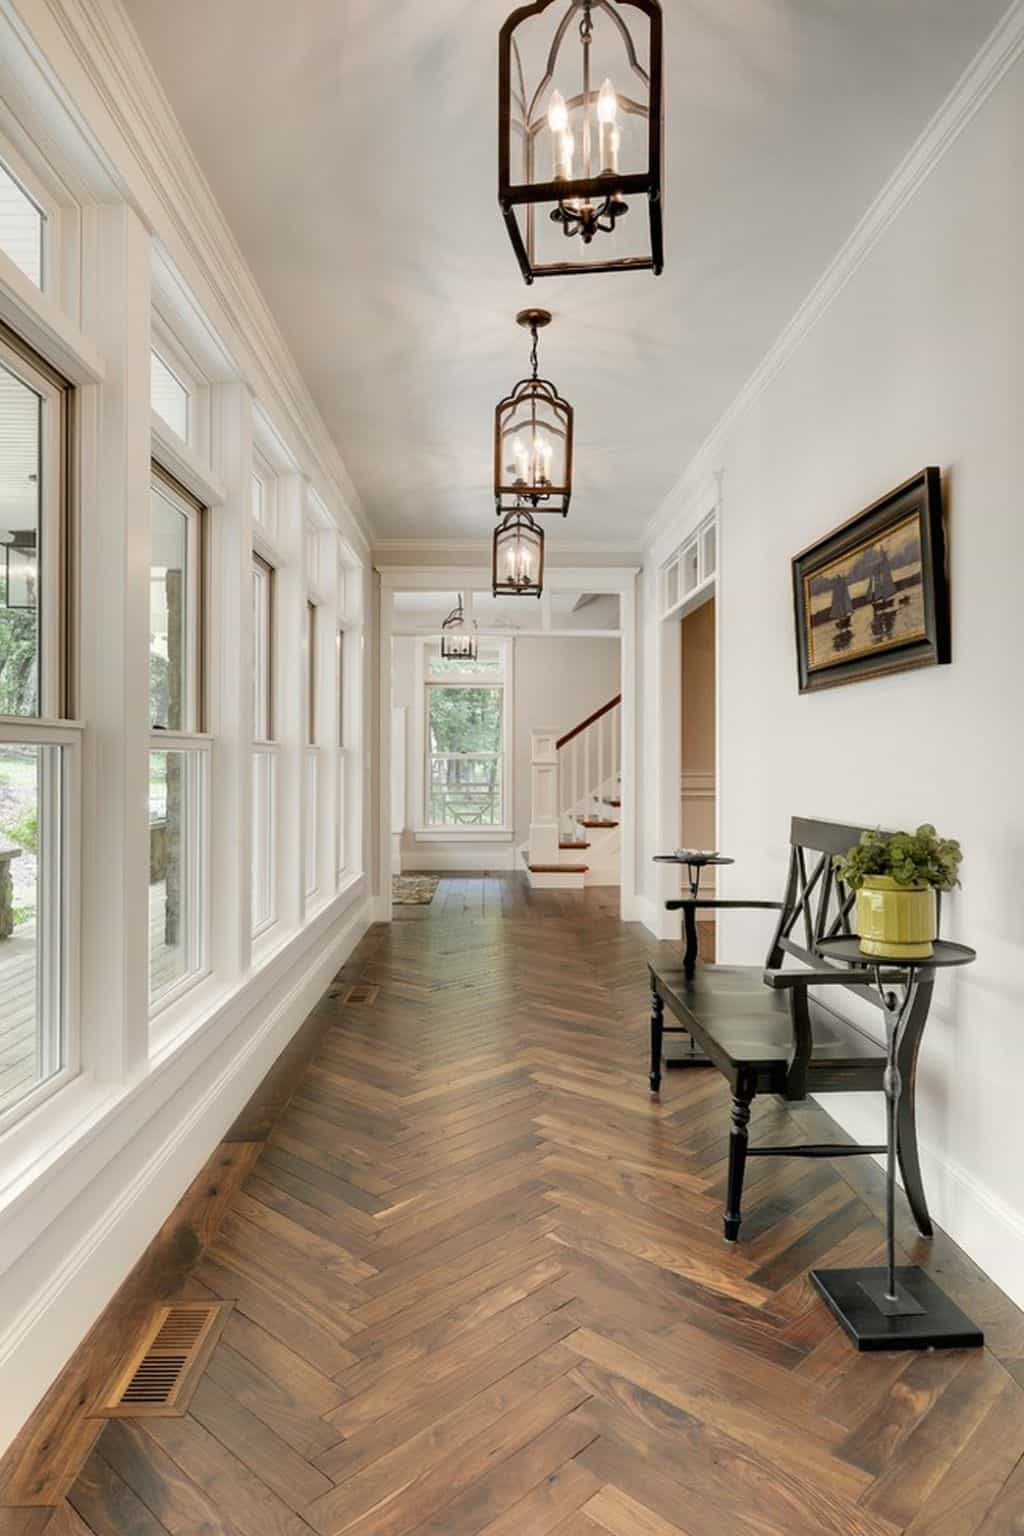 hallway-with-neutral-wall-colors-and-herringbone-wooden-floors.png.jpeg